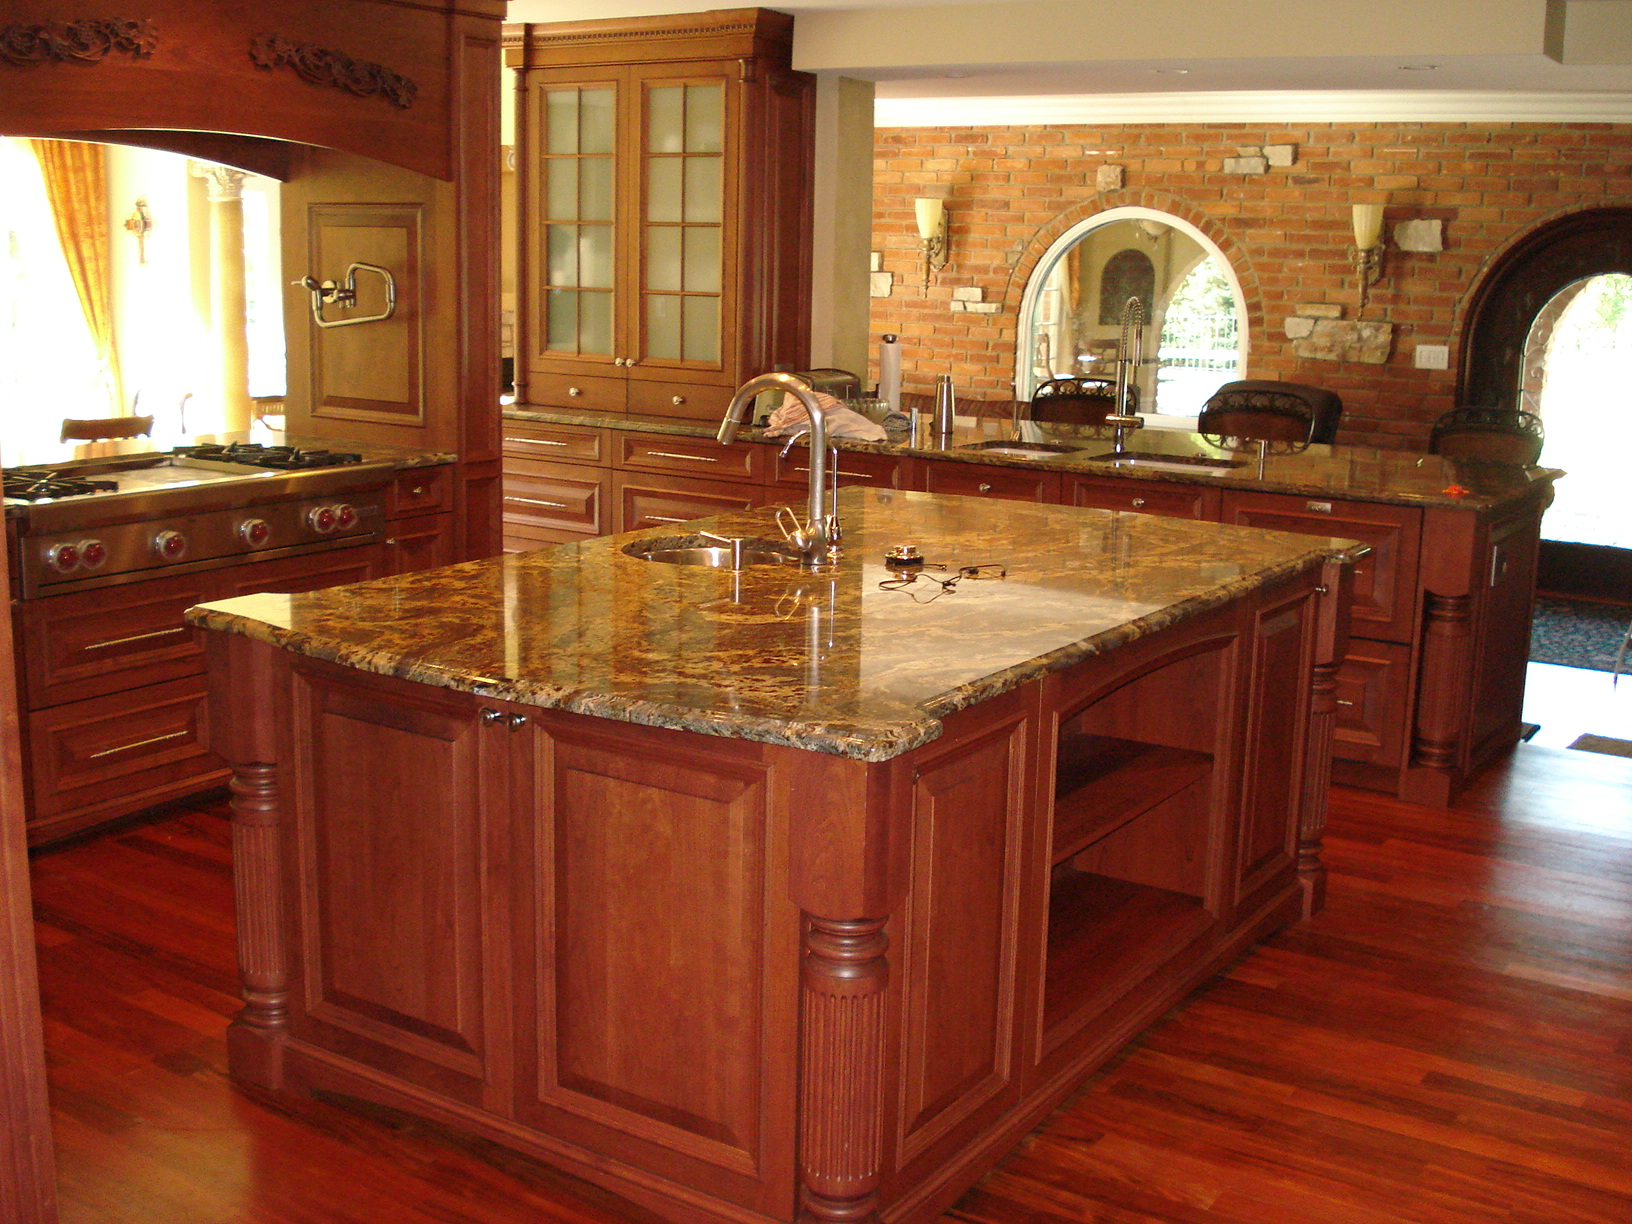 granite kitchen designs photo - 5